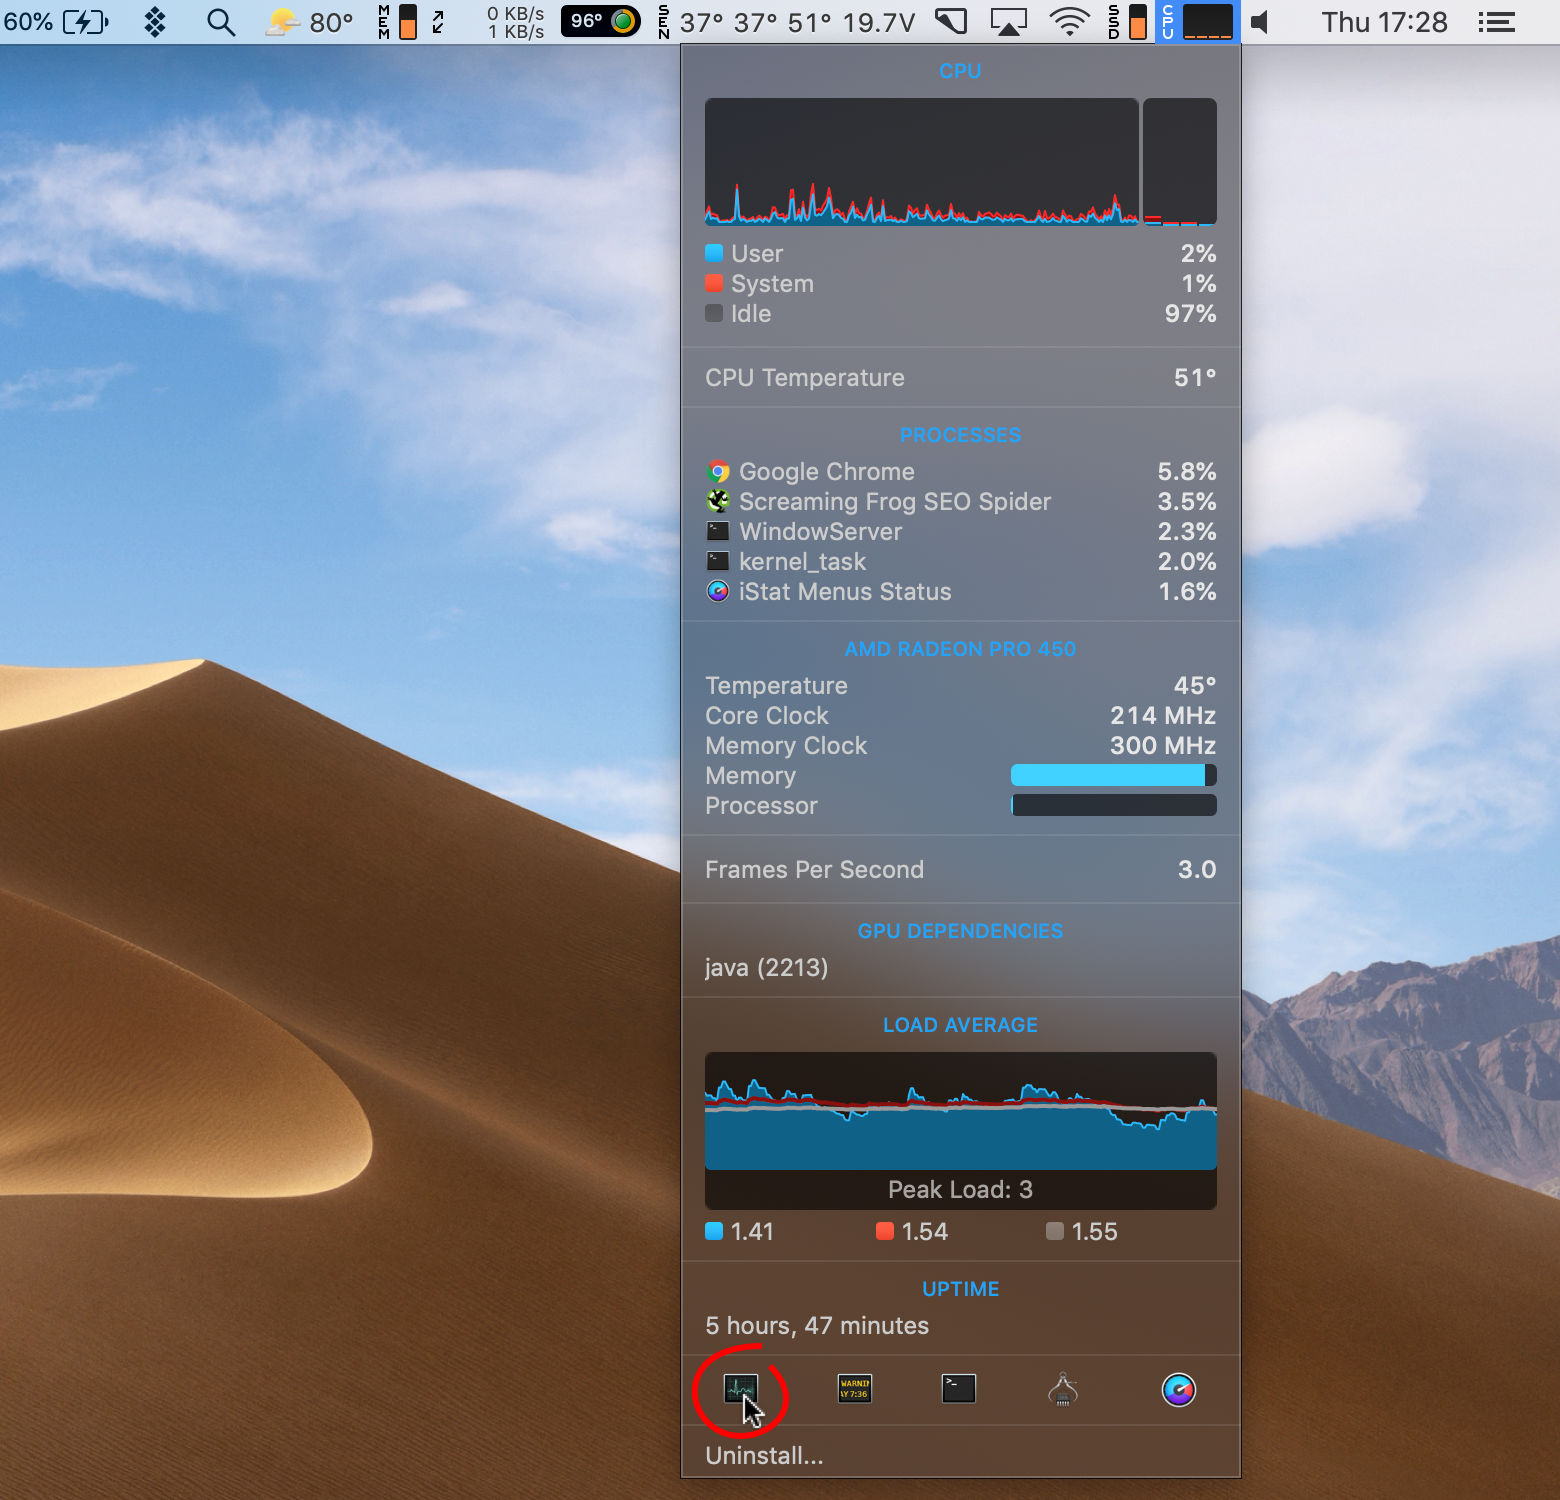 Open Activity Monitor from iStat Menus